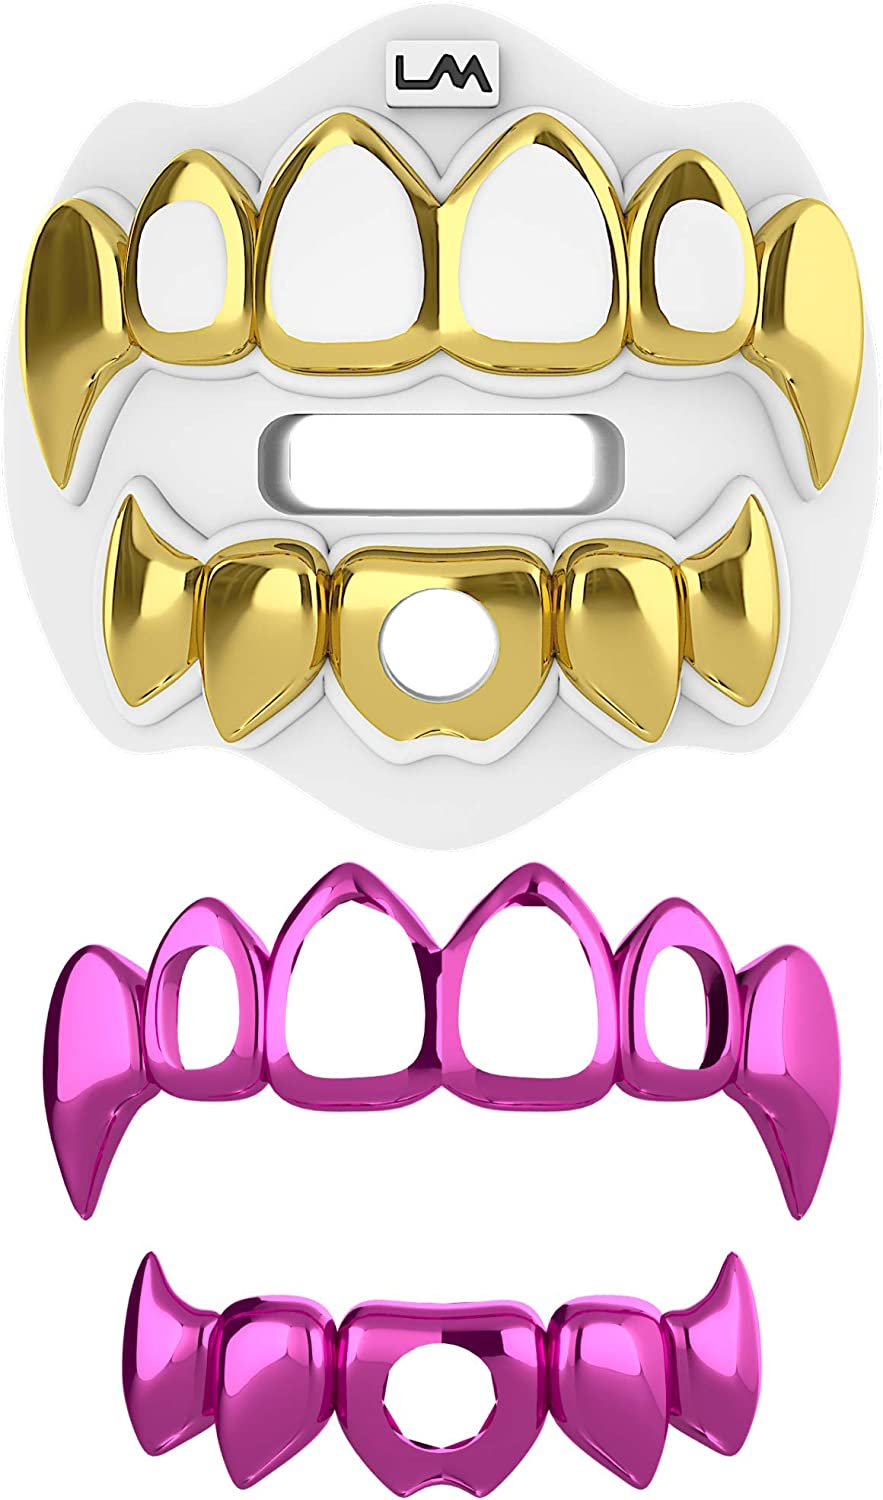 Loudmouth Football Mouth Guard | 3D Chrome Grillz Adult & Youth Mouth Guard | Mouth Piece for Sports | Maximum Air Flow Mouth Guards | Lip and Teeth Protector (3D Grillz - Chrome Black/Silver) : Sports & Outdoors